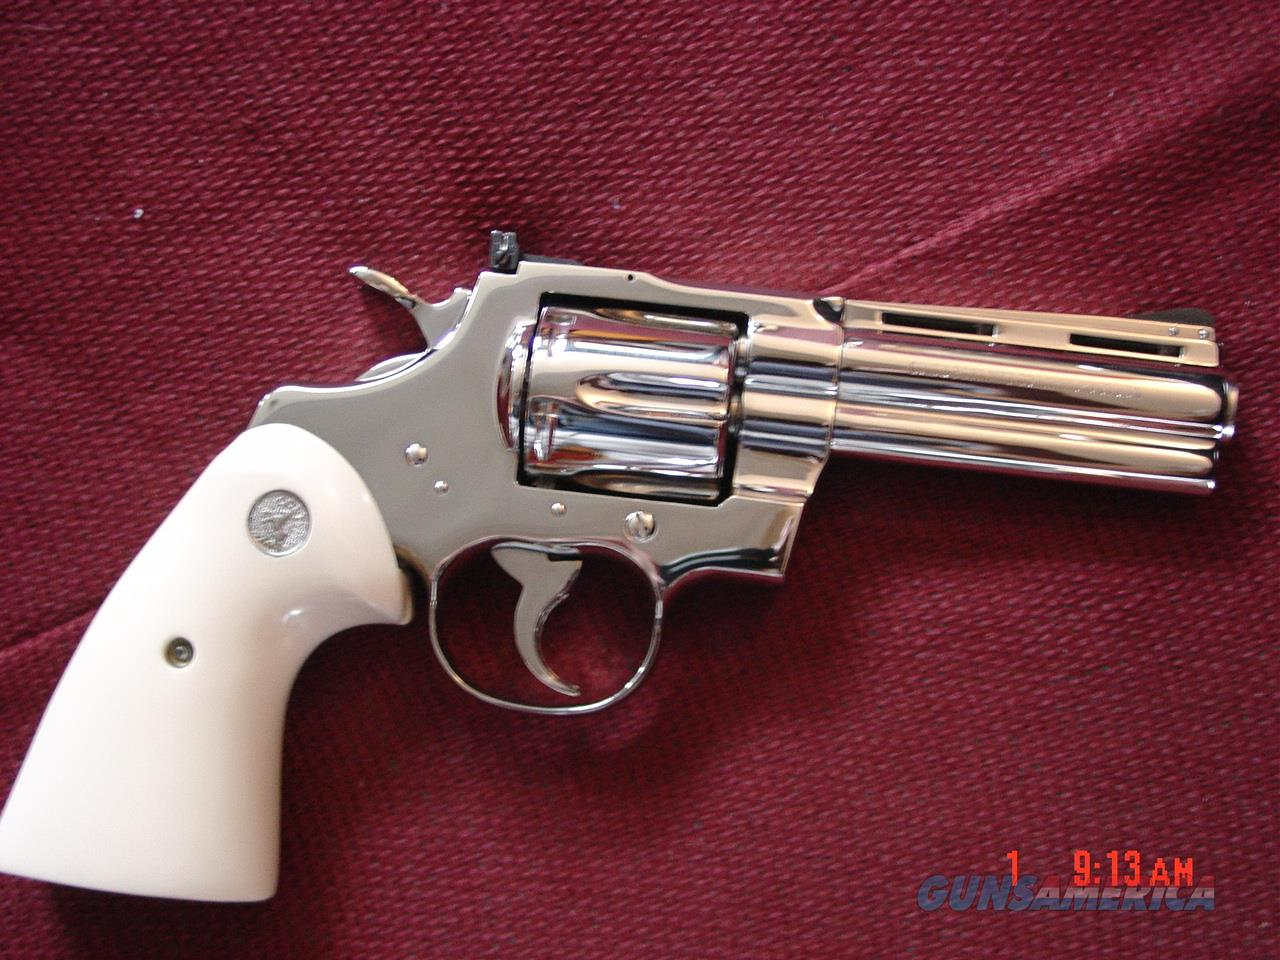 "Colt Python 4"" 1971,refinished in bright mirror nickel in Nov 2016,bonded ivory grips,357 magnum,a real showpiece !!  Guns > Pistols > Colt Double Action Revolvers- Modern"